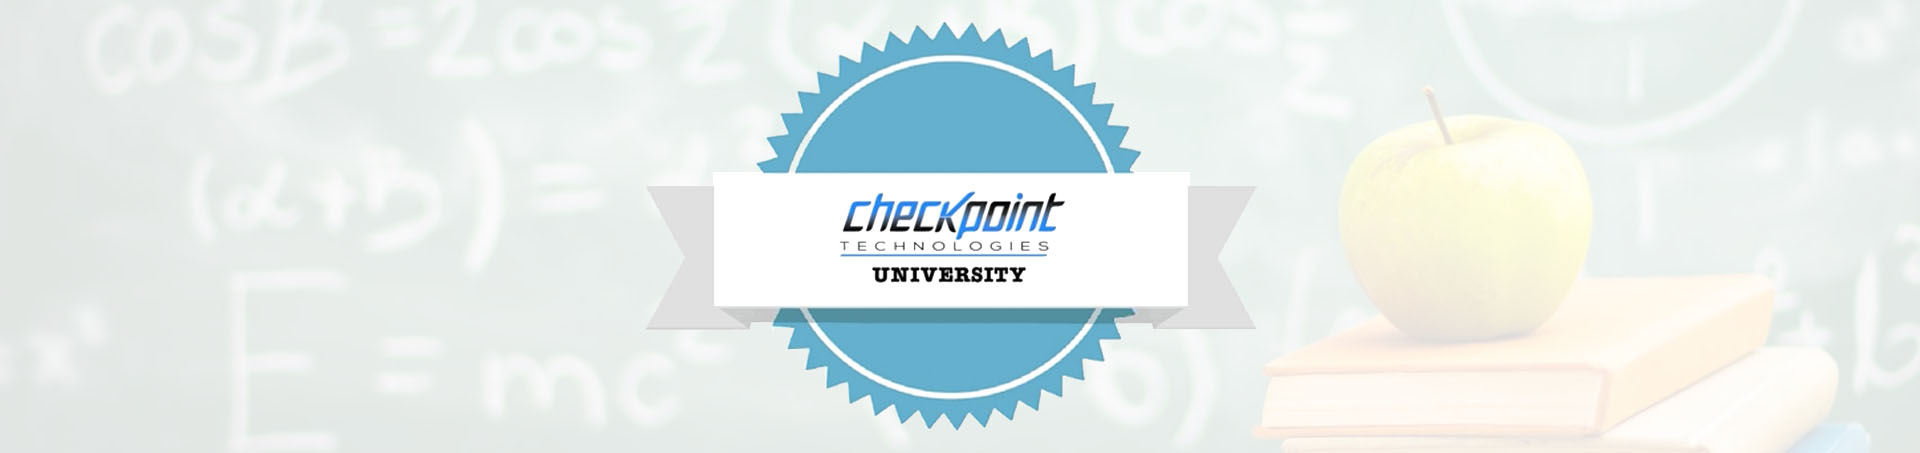 Checkpoint University